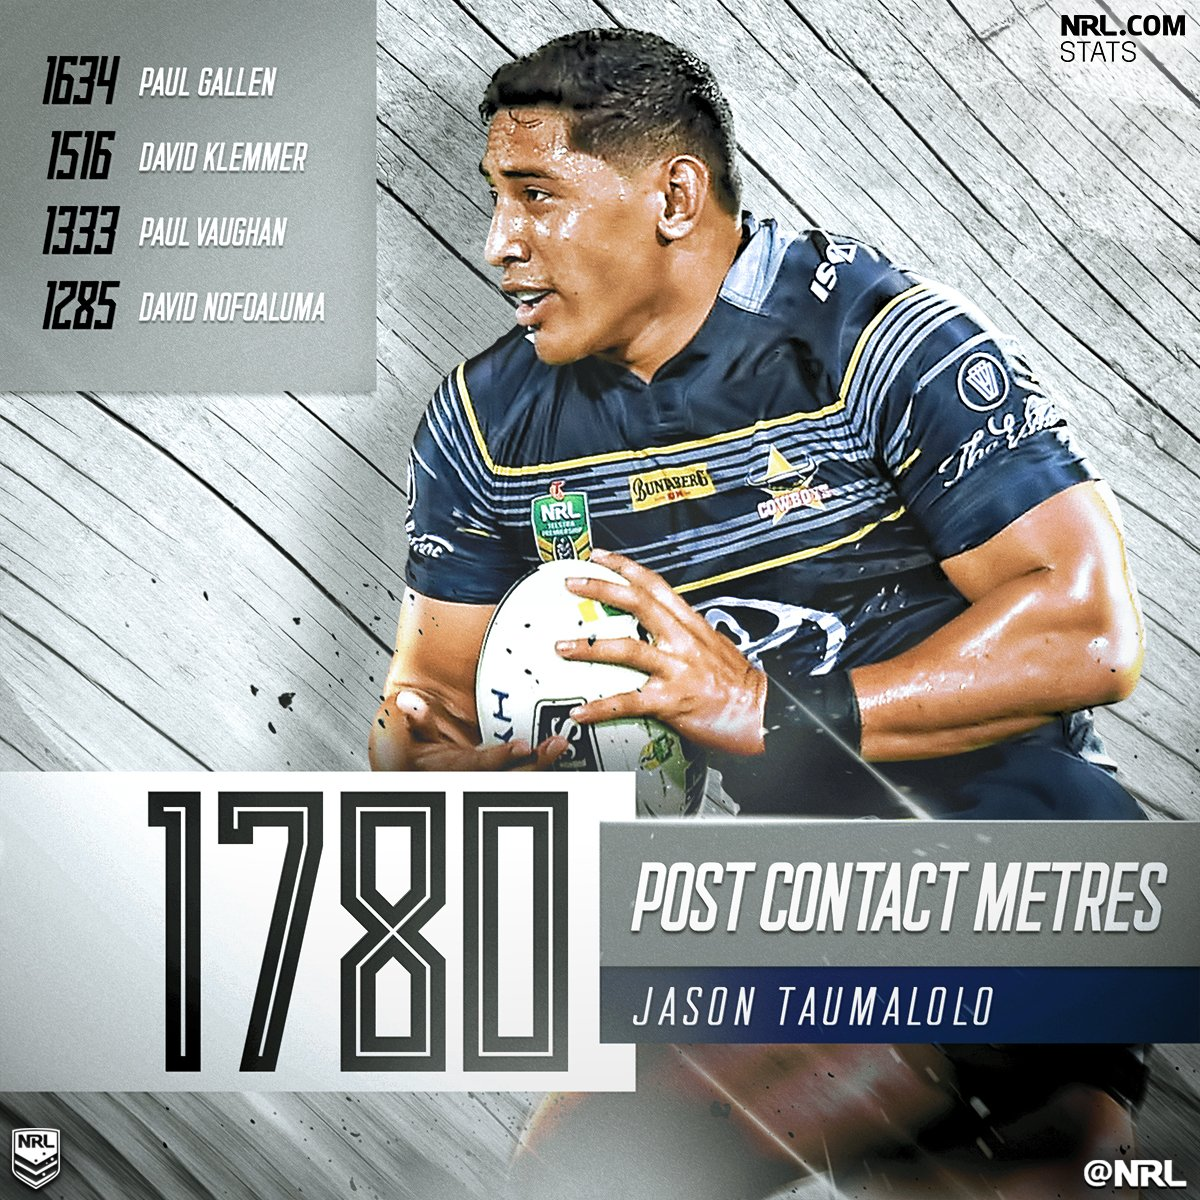 POST CONTACT METRES  Another one for Jason Taumalolo, finishing the ye...